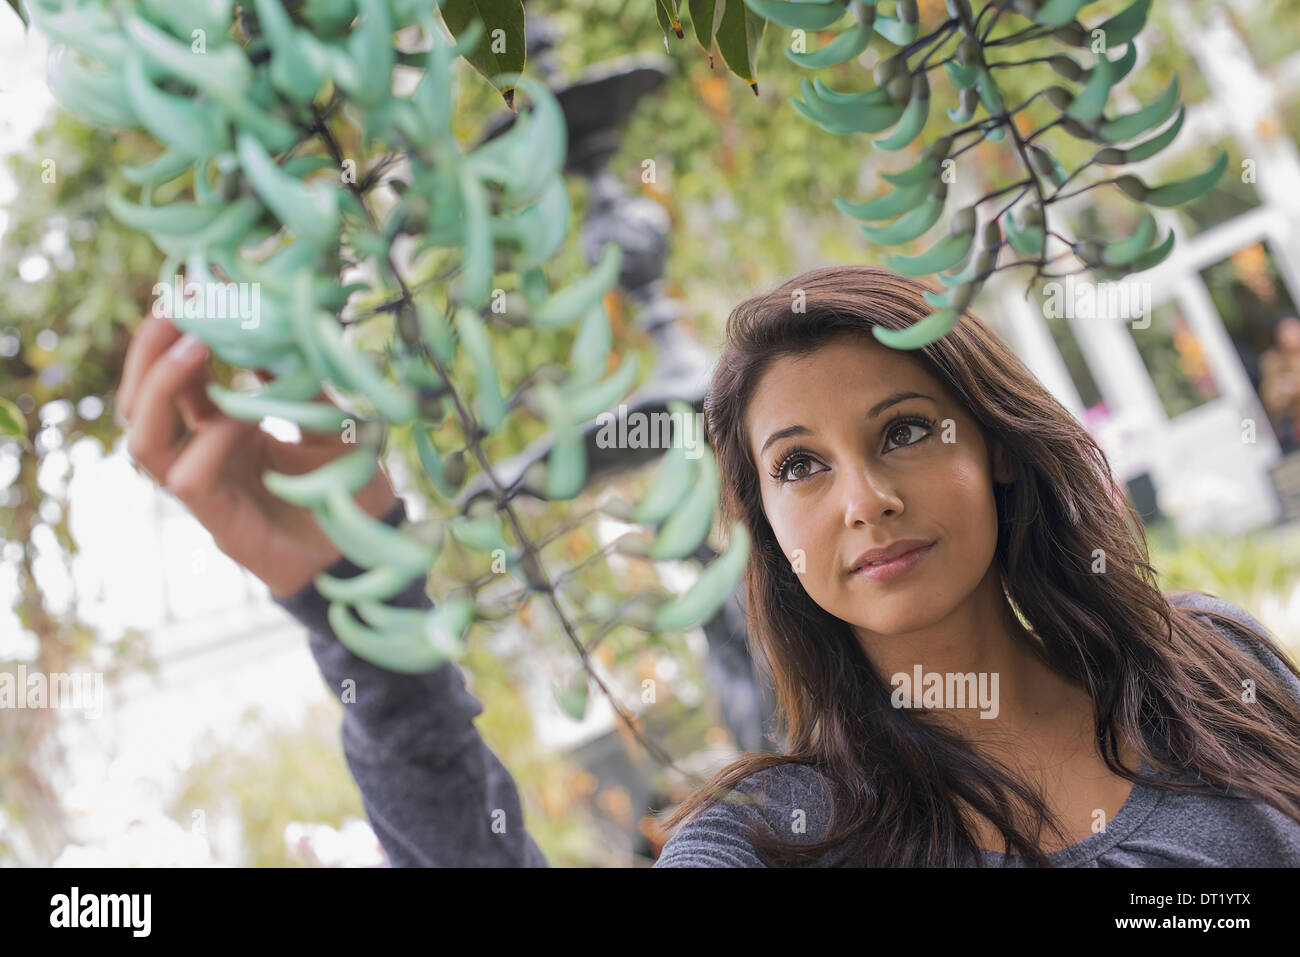 A young woman reaching up to admire a plant with blue flower petals indoor glasshouse in a botanical garden in New - Stock Image